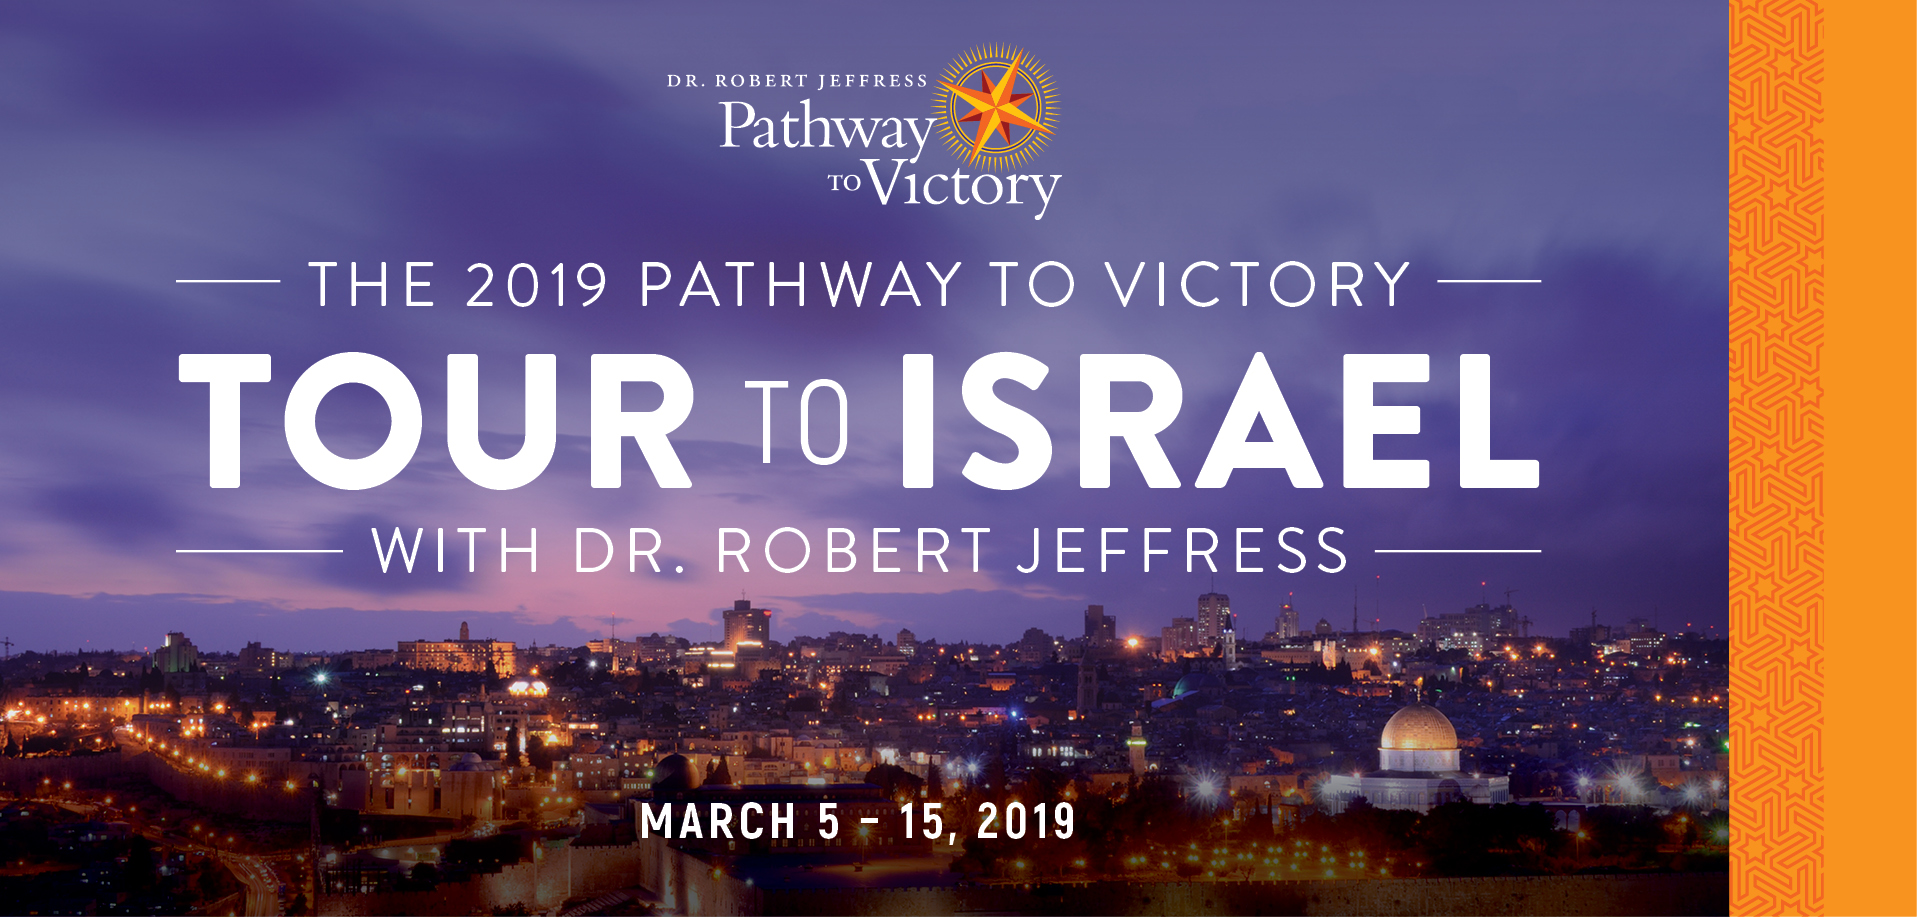 Take a Christian TourWOX with Pathway to Victory - Christian Tour to Israel - March 5-15, 2019